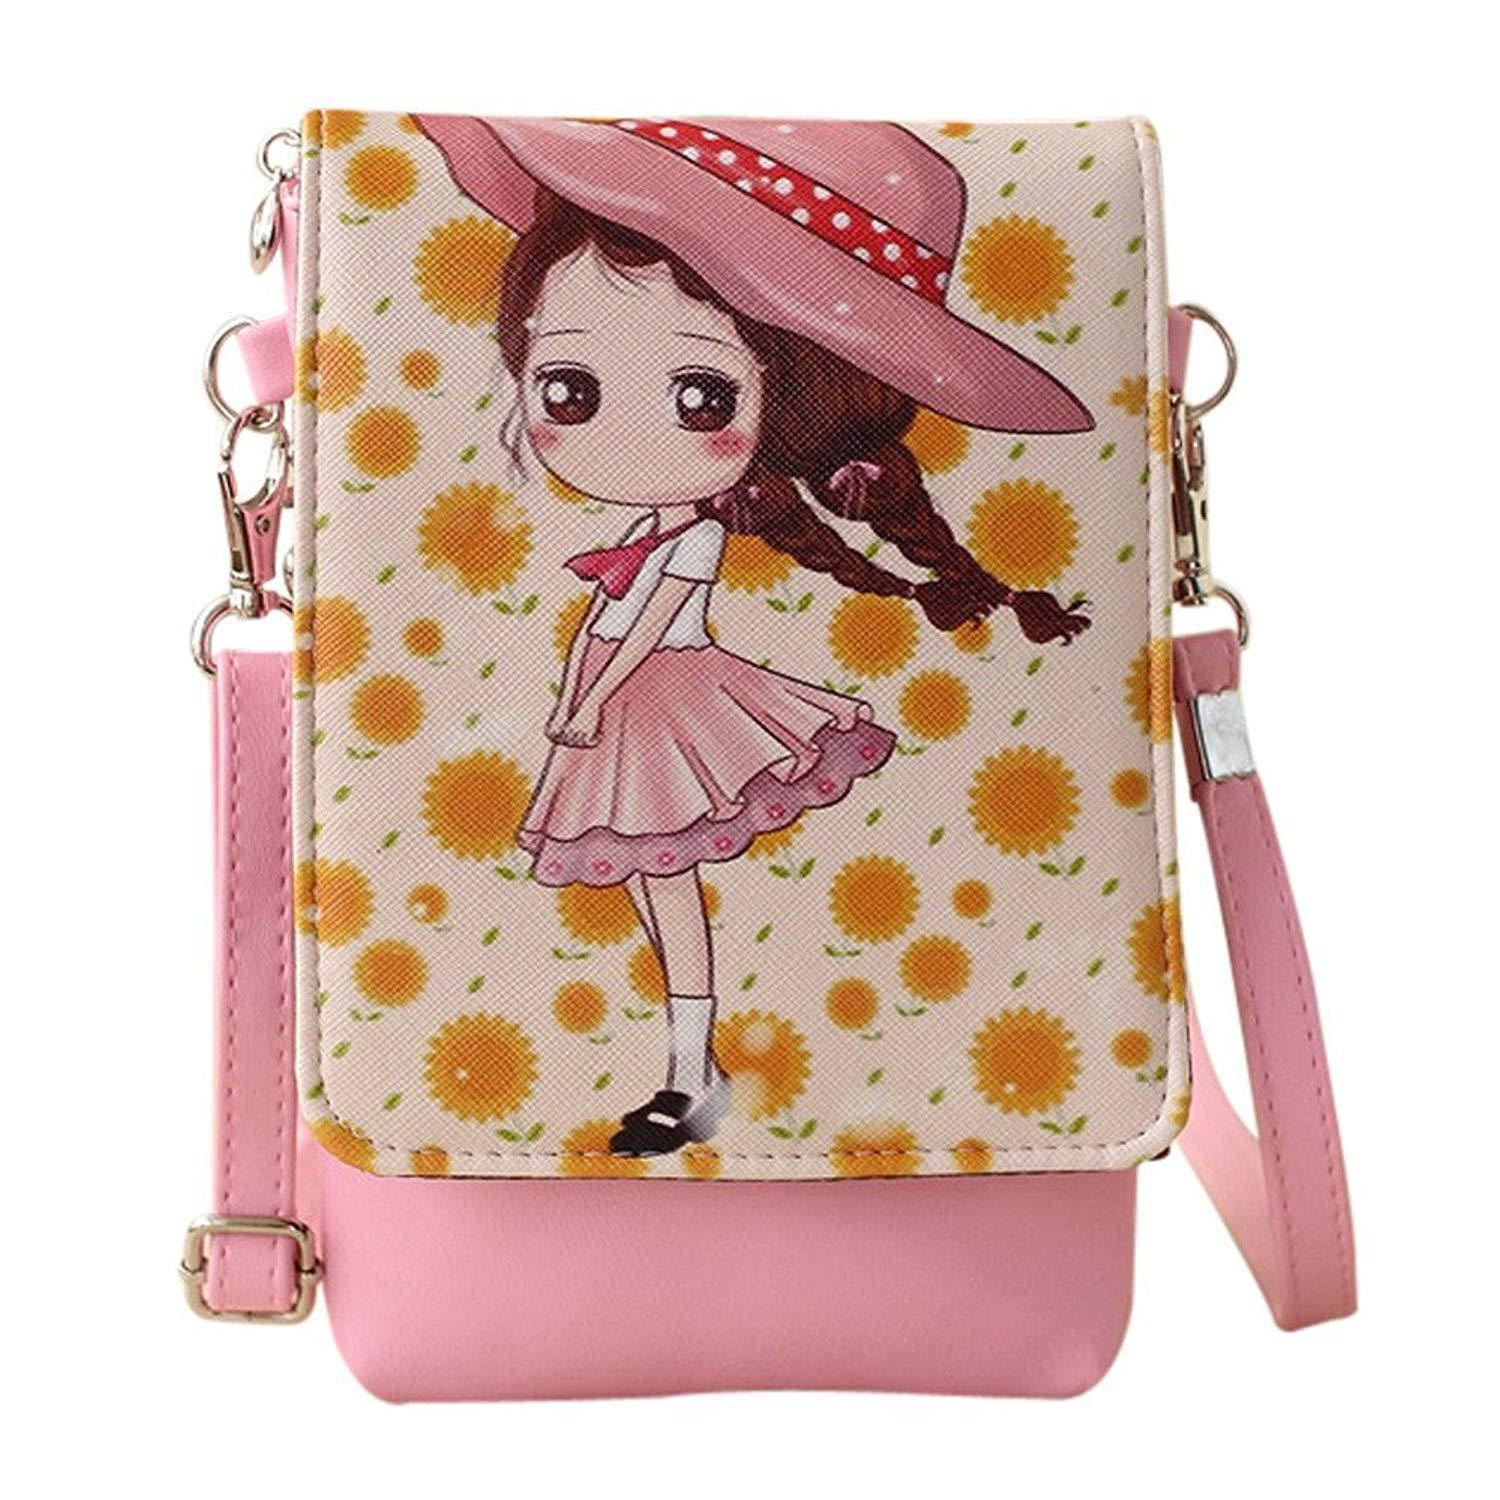 Liraly Gift Bags,Clearance Sale! 2018 Shoulder Bags Women's Handbags & Cartoon Handbags Kids Girls Mini Crossbody Bags